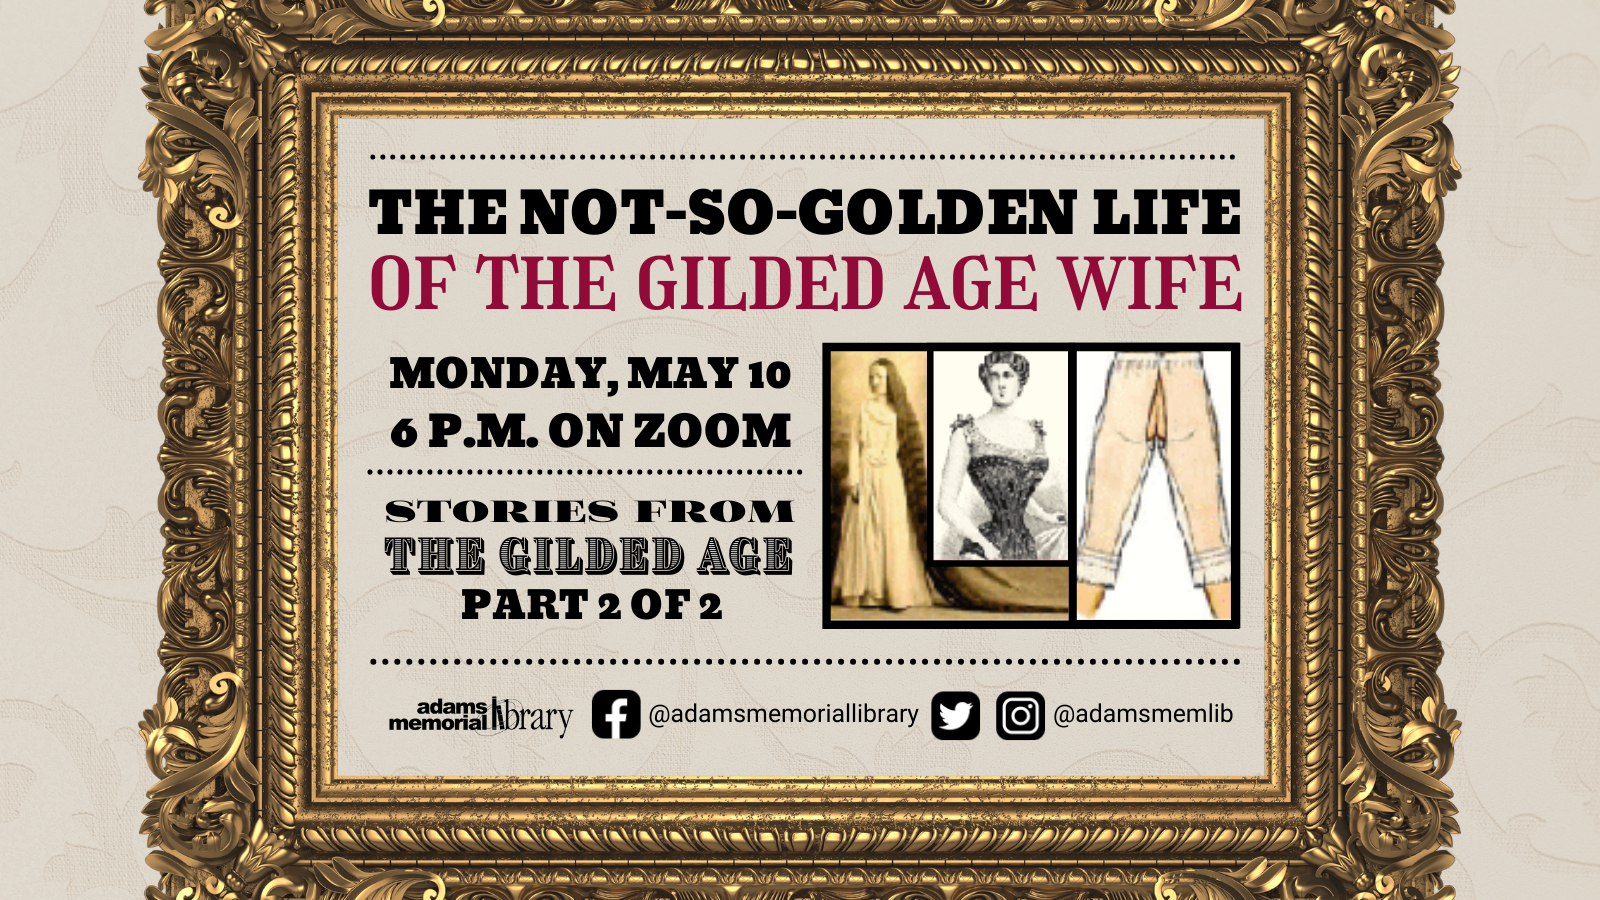 The Not-So-Golden Life of the Gilded Age Wife